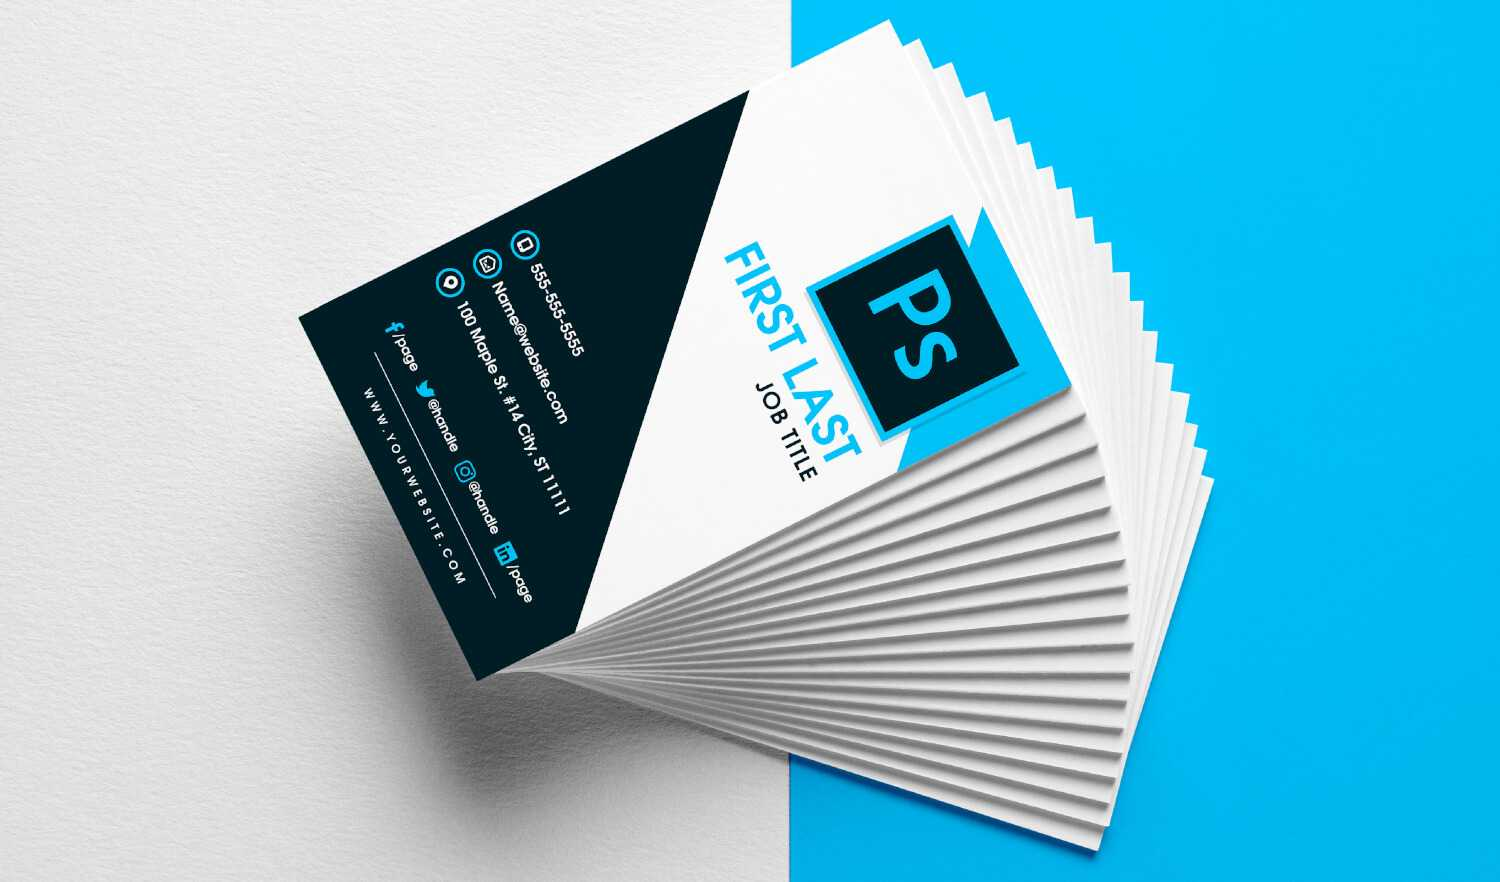 Free Vertical Business Card Template In Psd Format In Free Business Card Templates In Psd Format